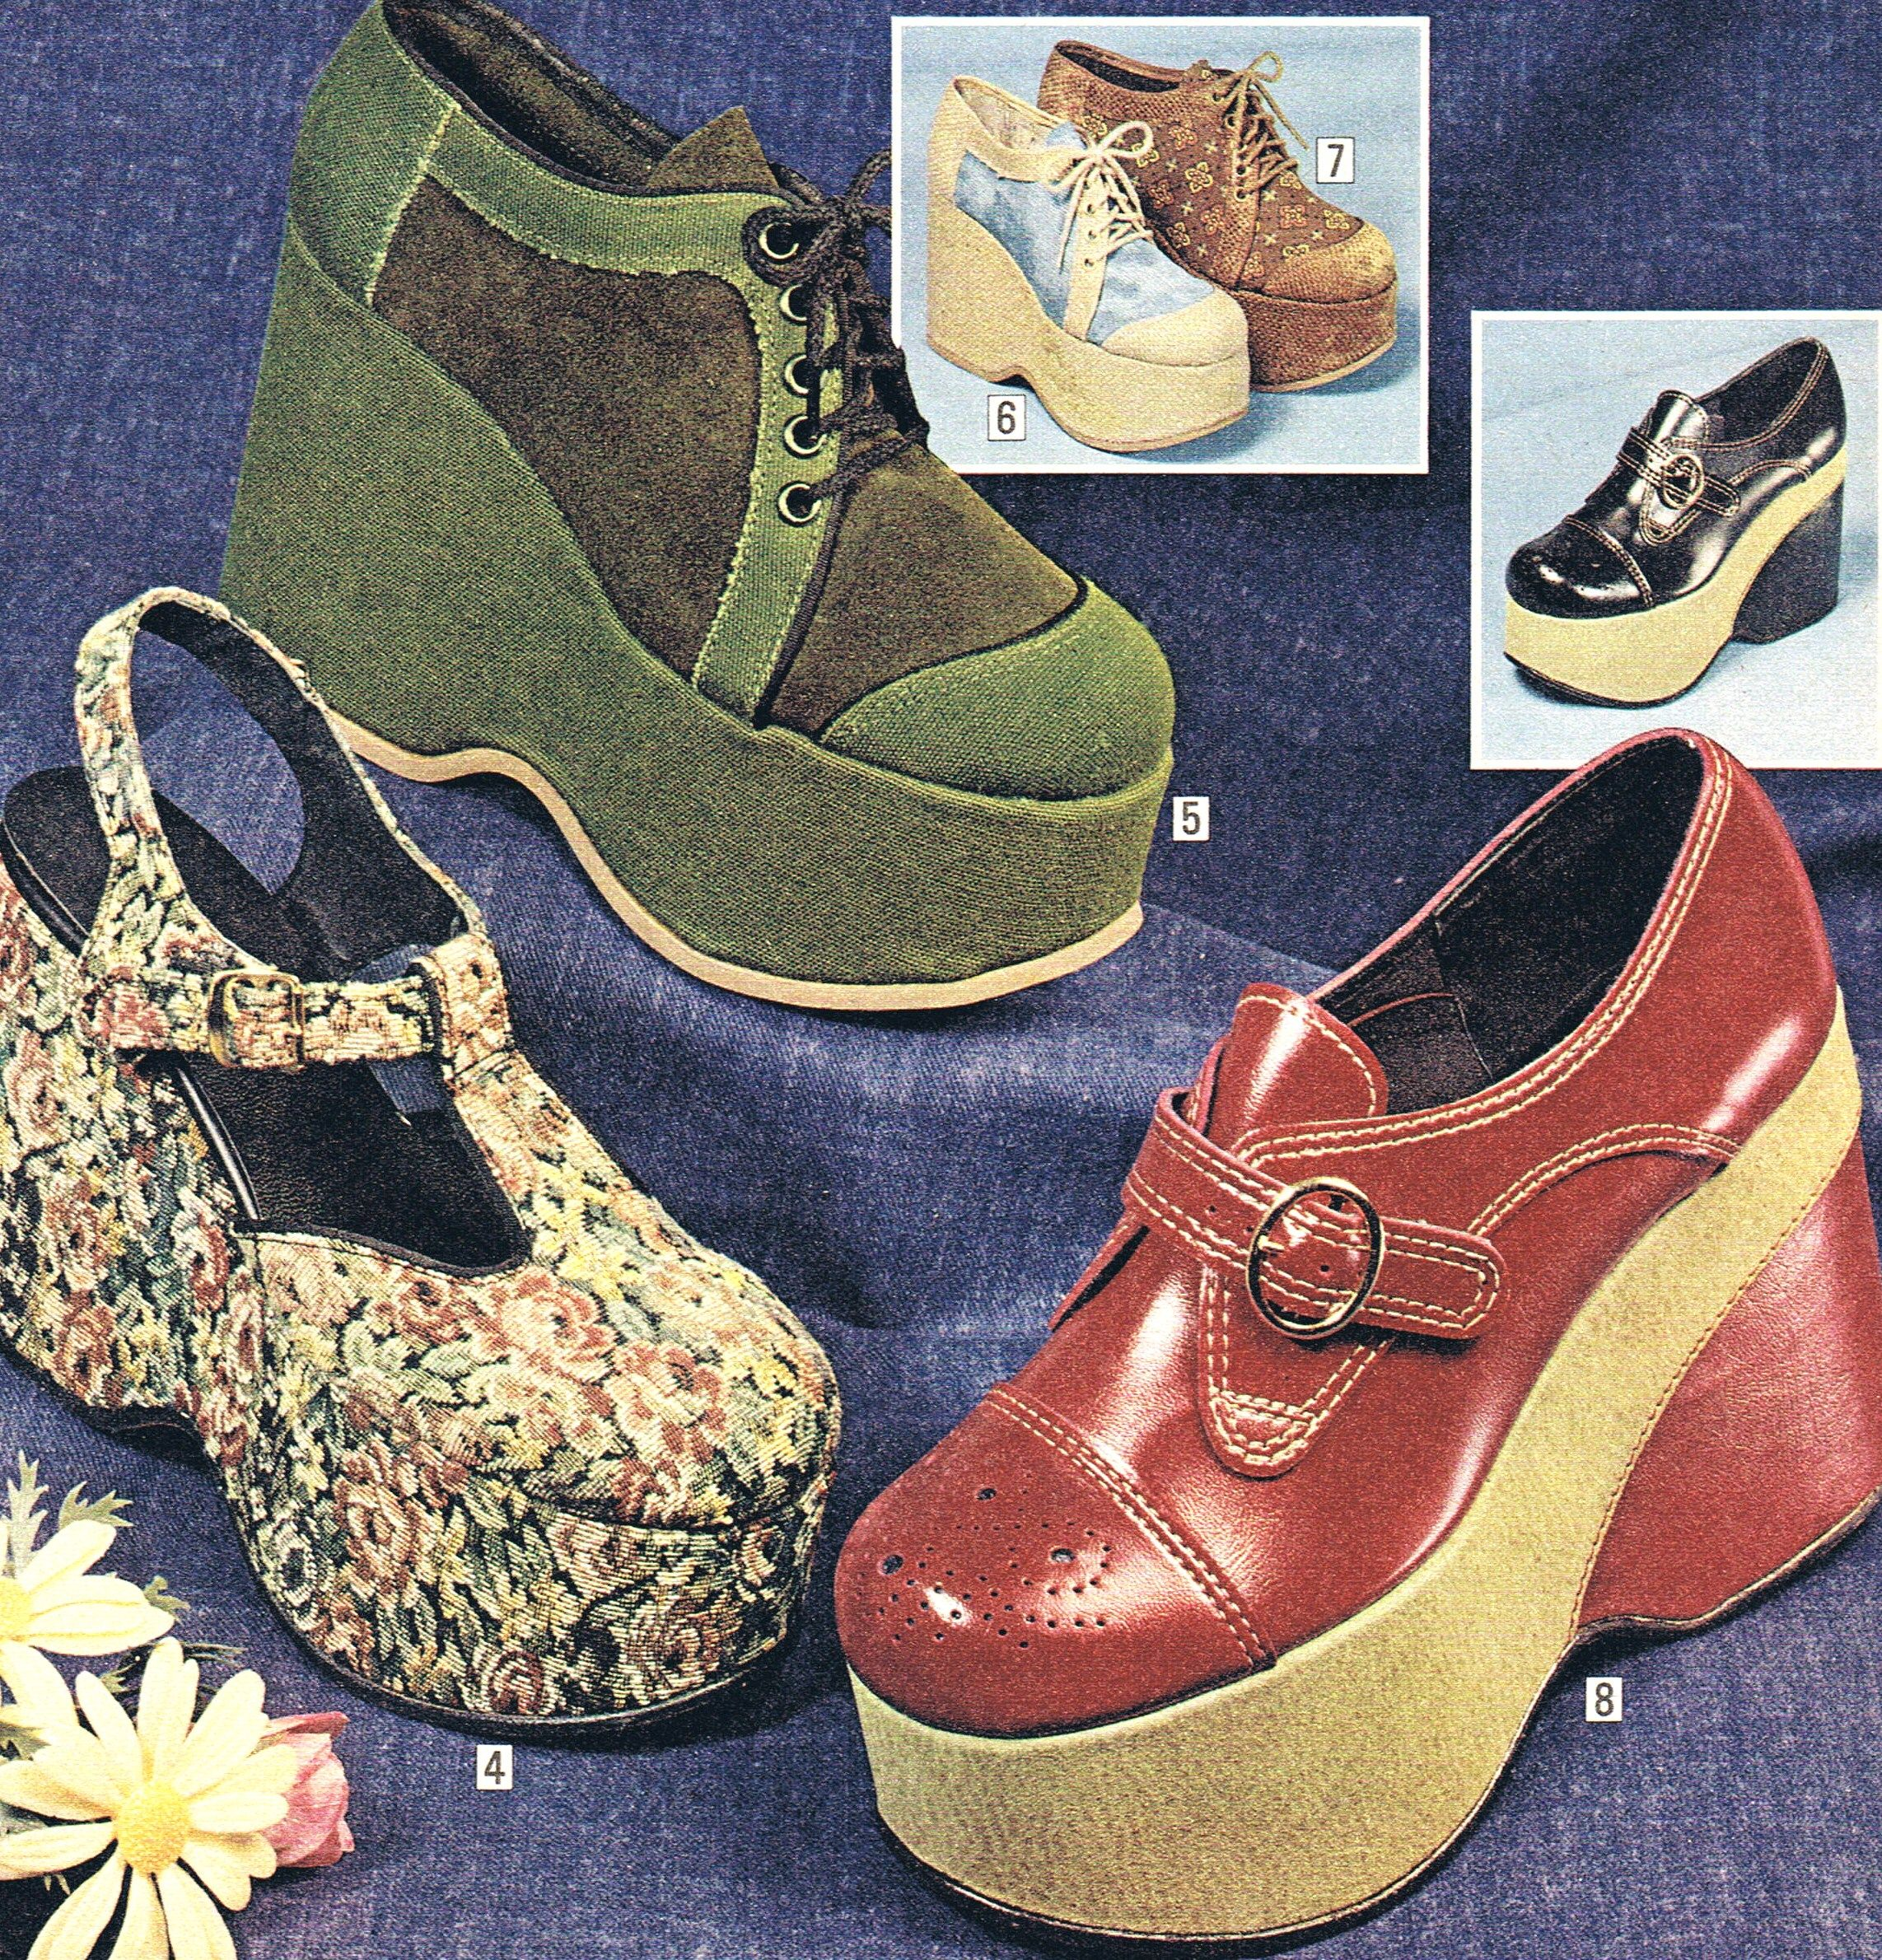 c3513937872 70 s shoes 1970s accessories. Fashion. Remembering the 70 s.